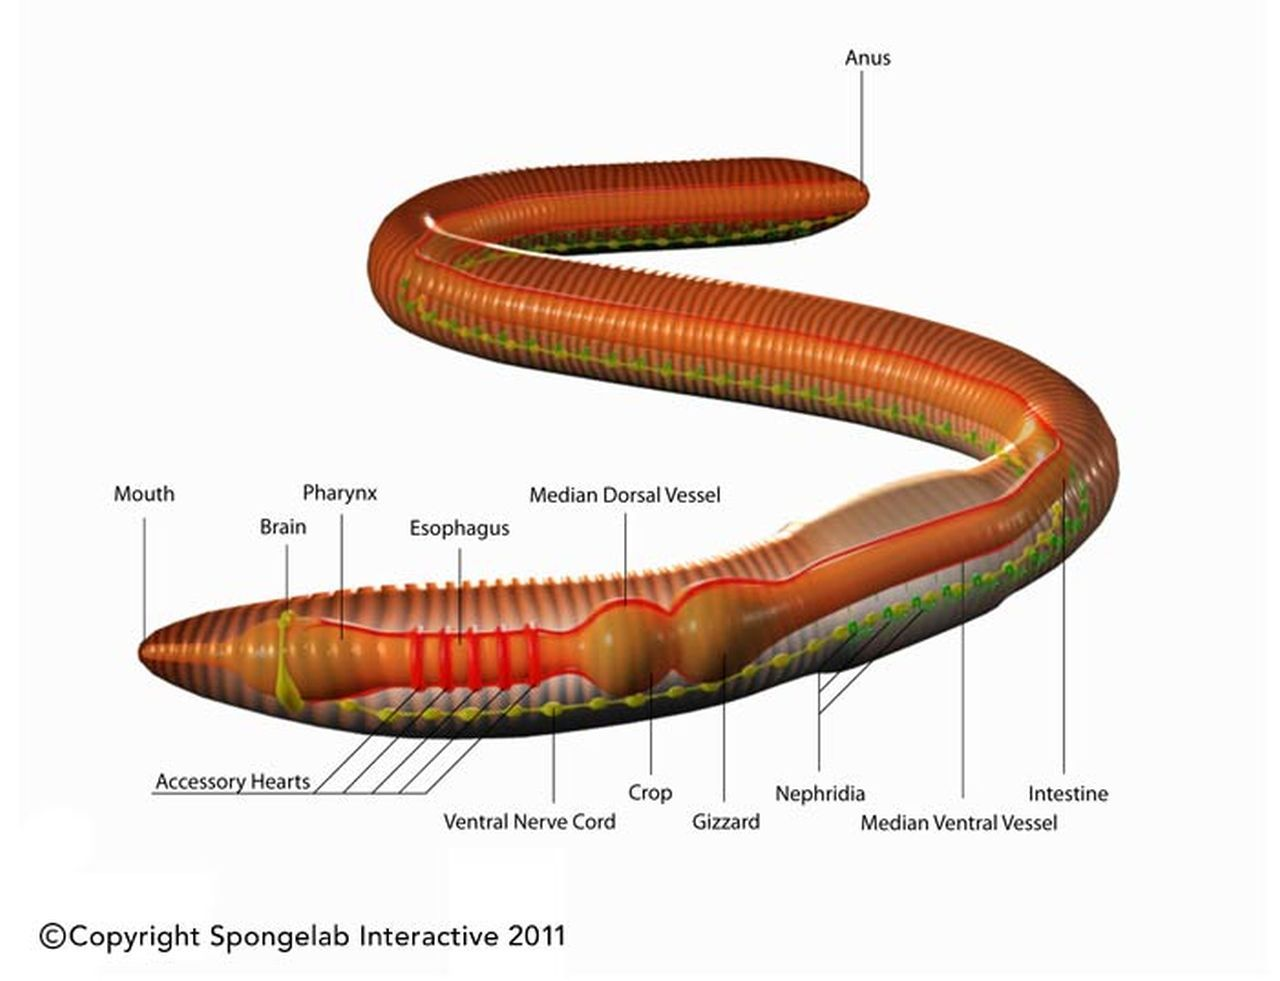 Worm Anatomy